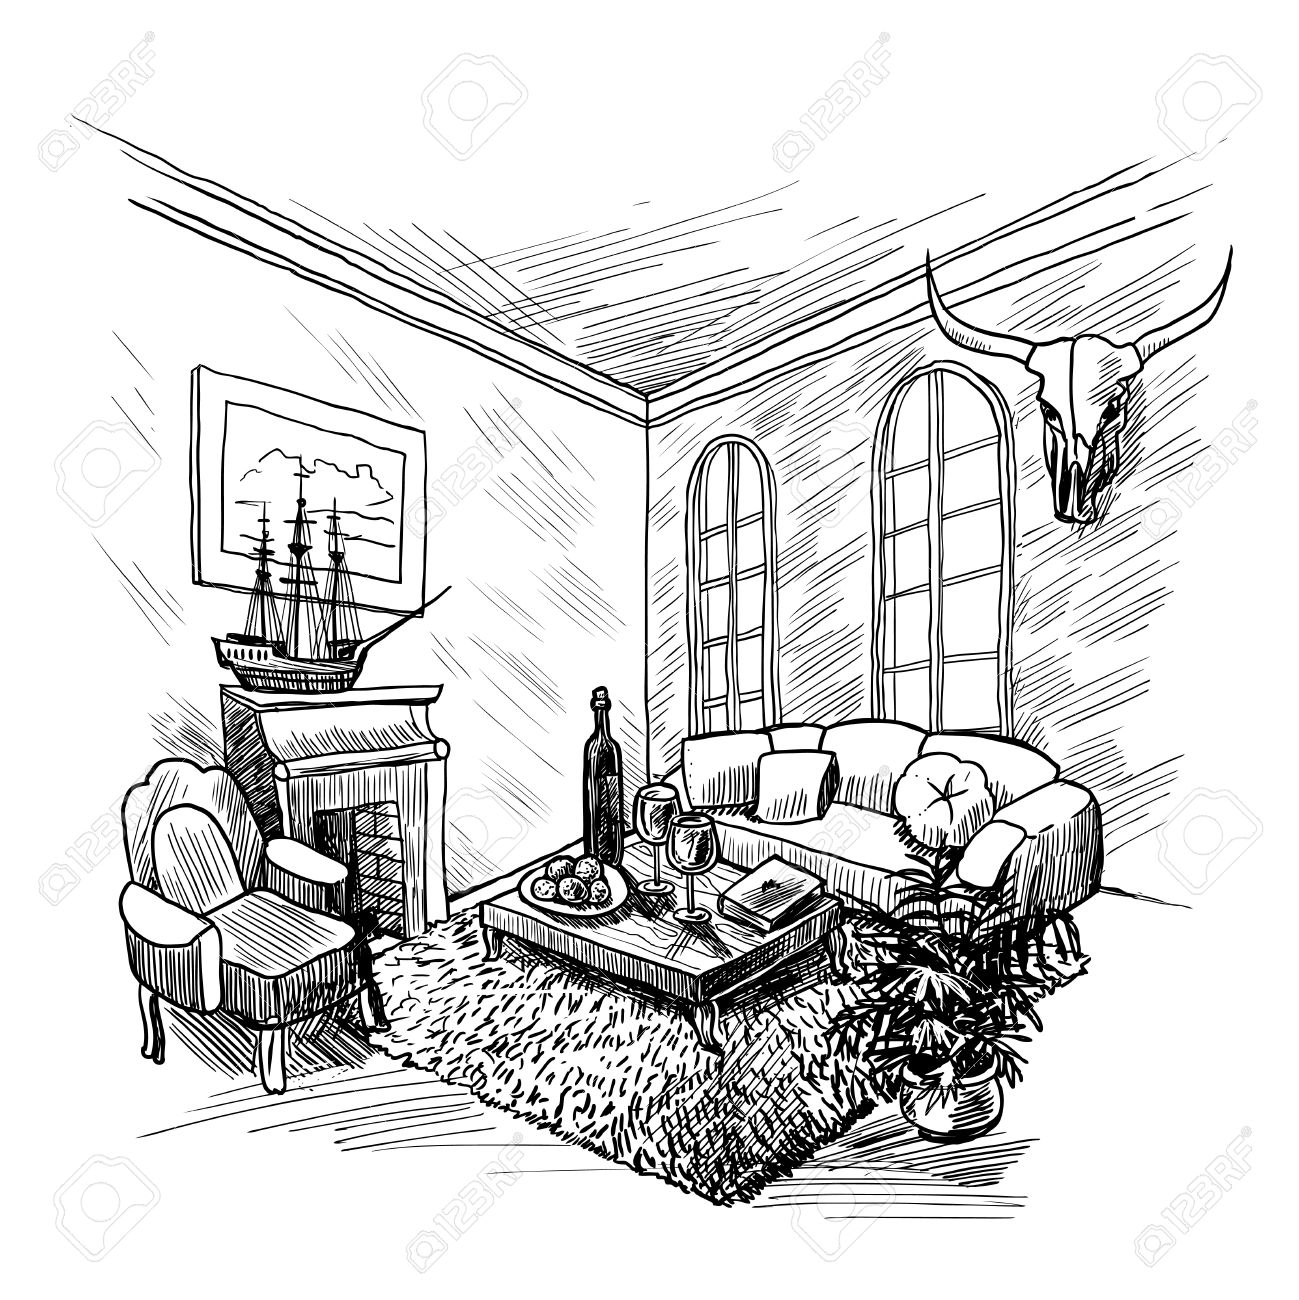 room interior sketch background with fireplace couch and table